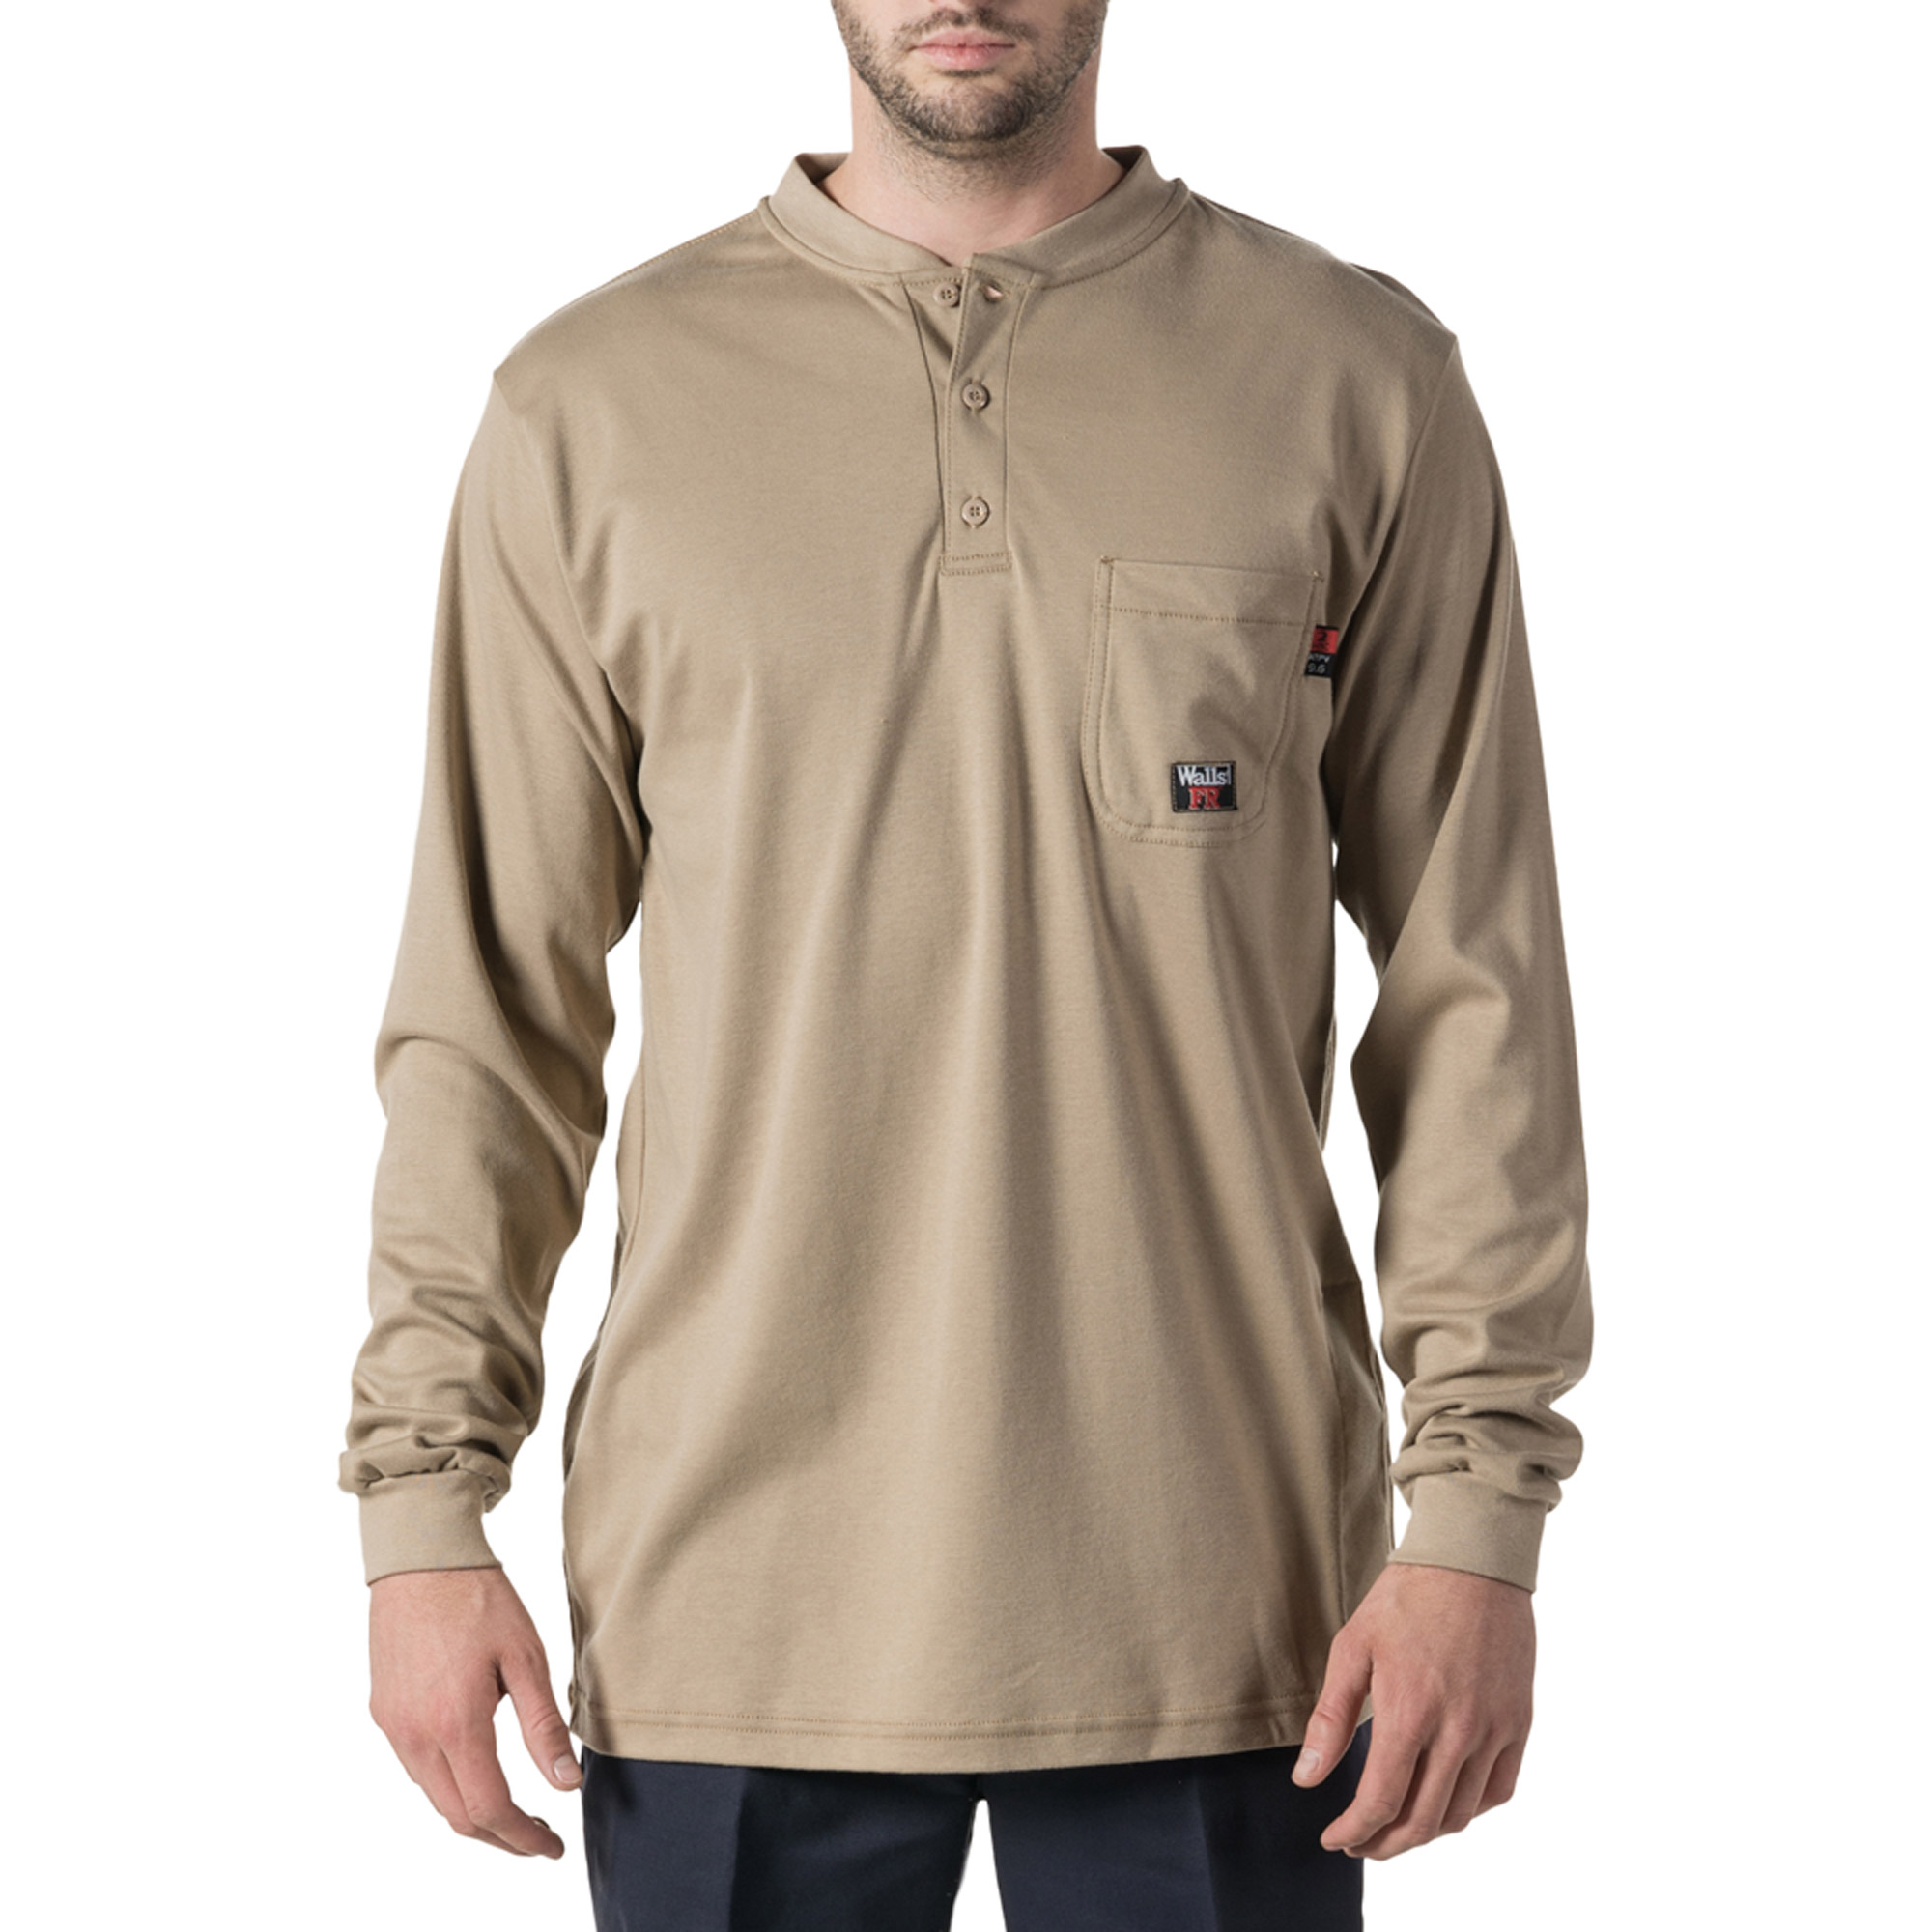 Big Men's Flame Resistant Long Sleeve Henley, HRC Level 2